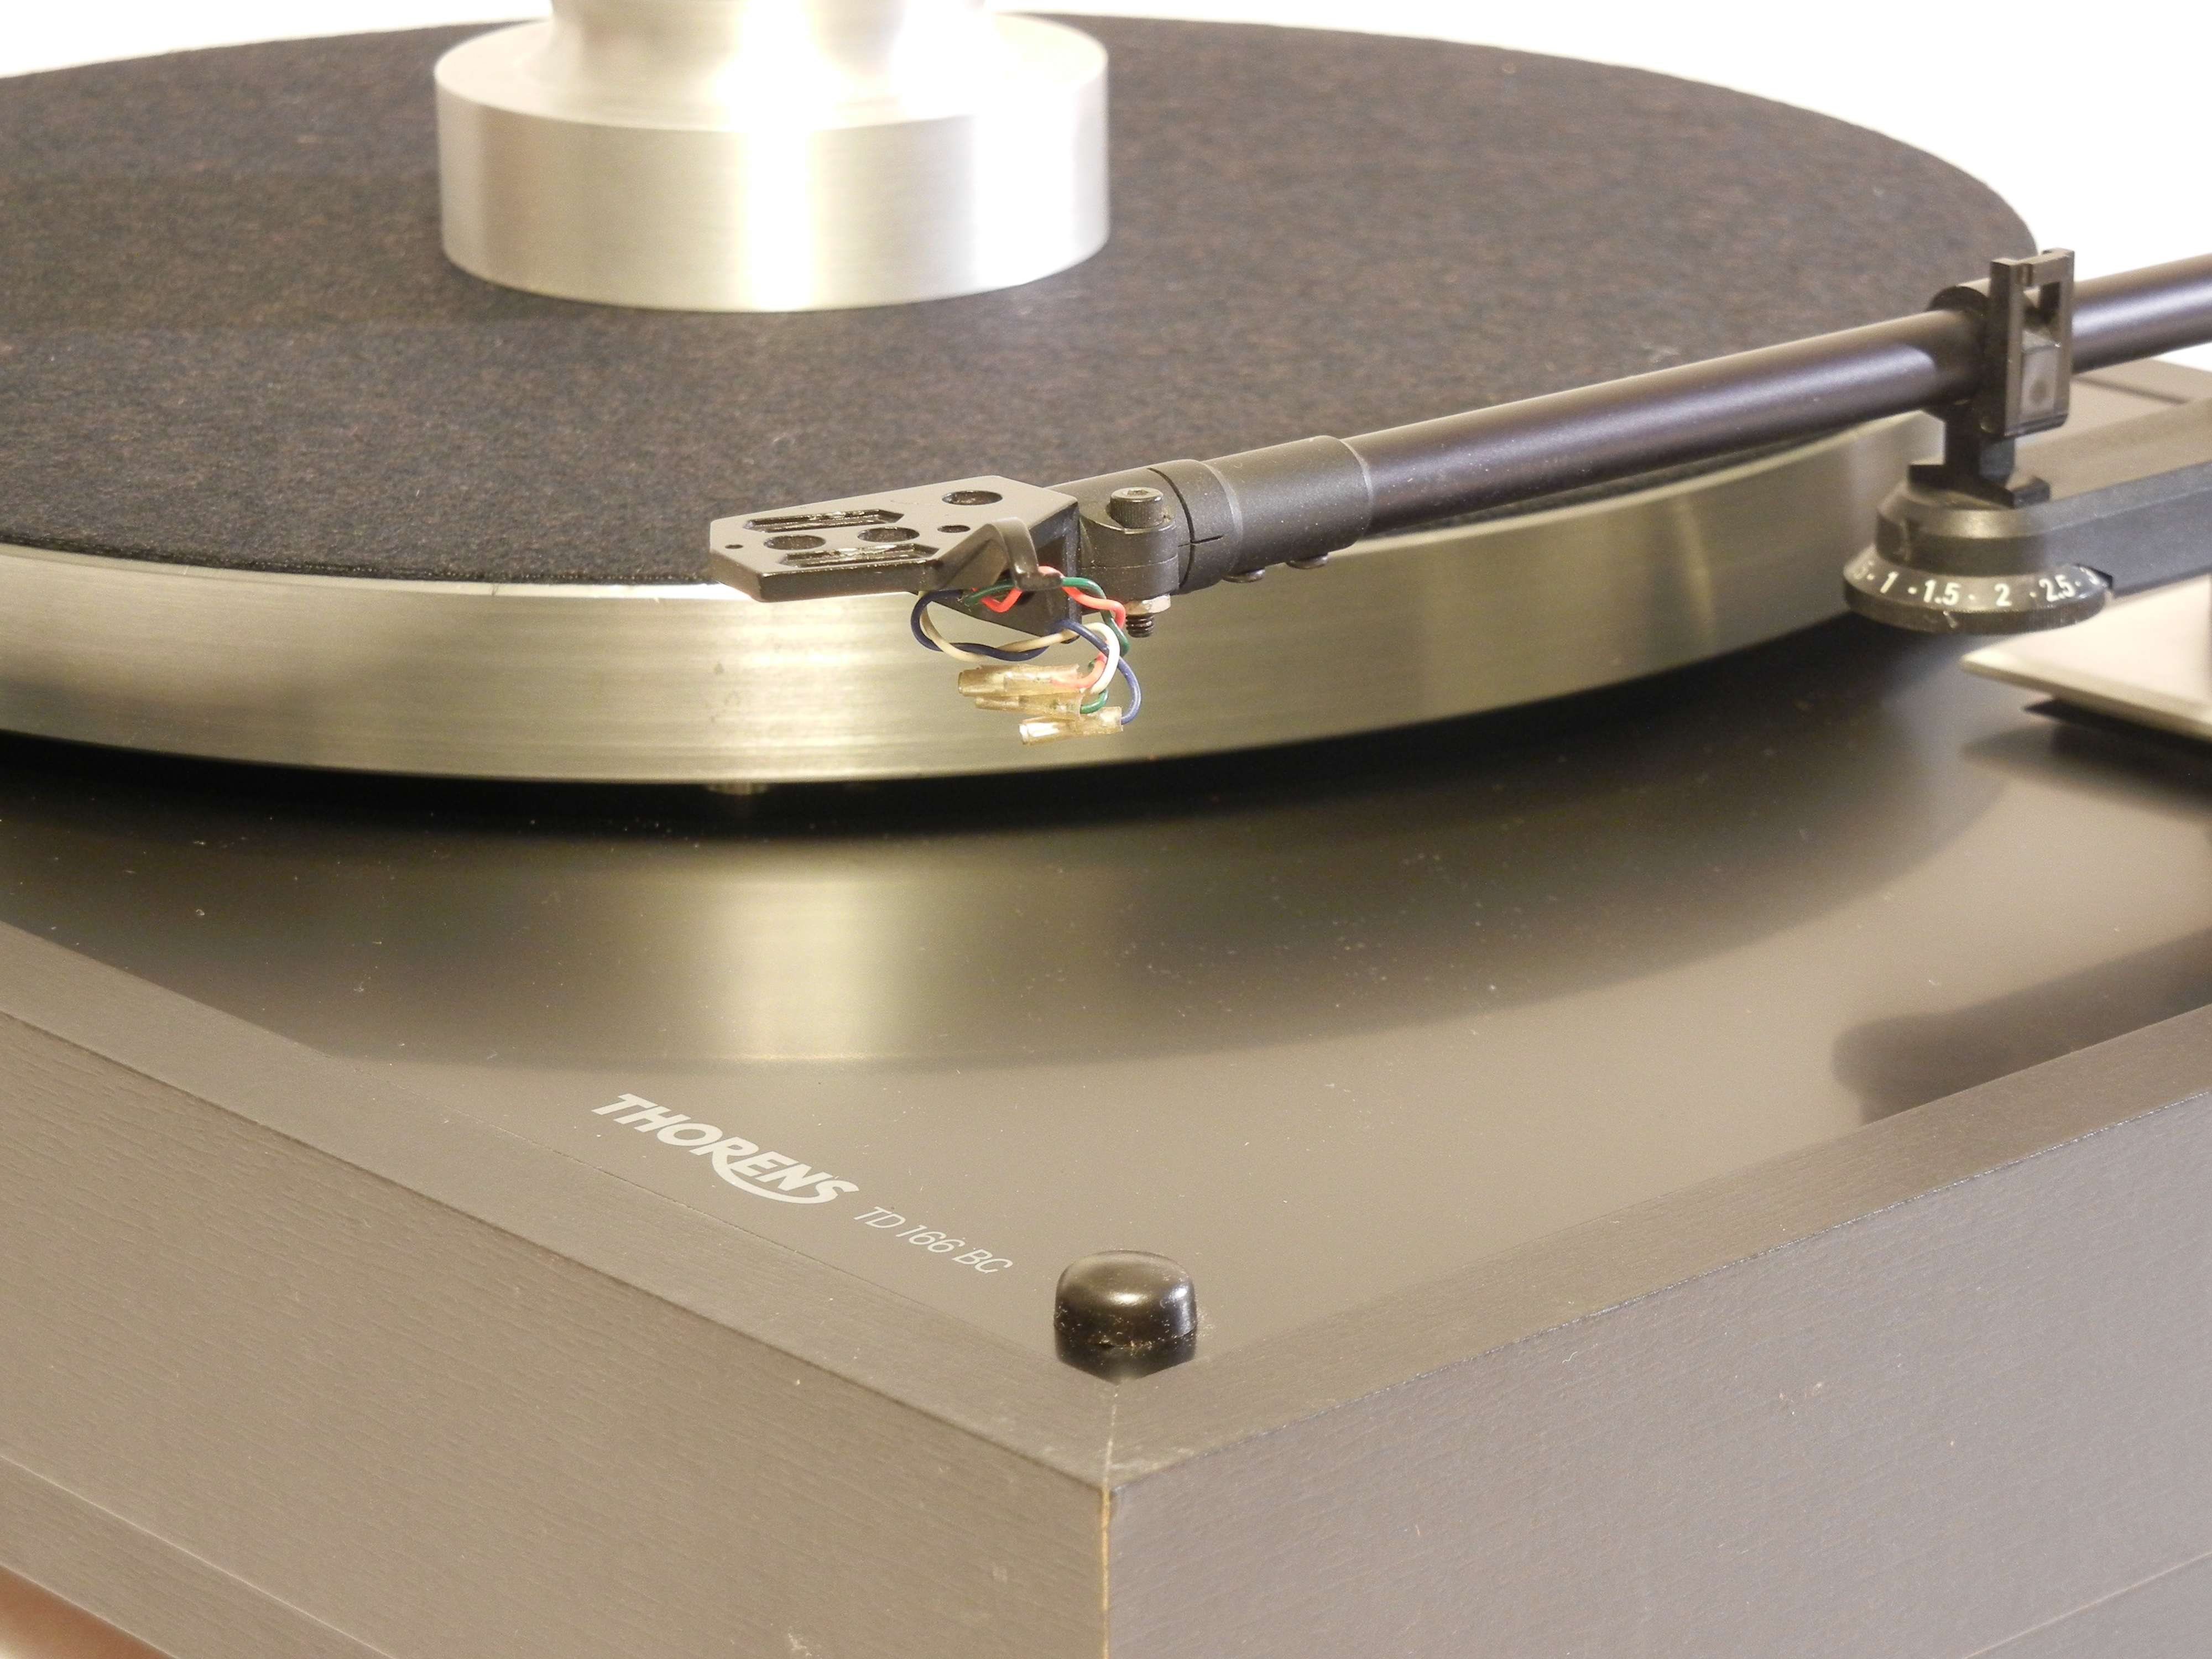 Linn basik lvx manual japanese built stereo tonearm vinyl engine.